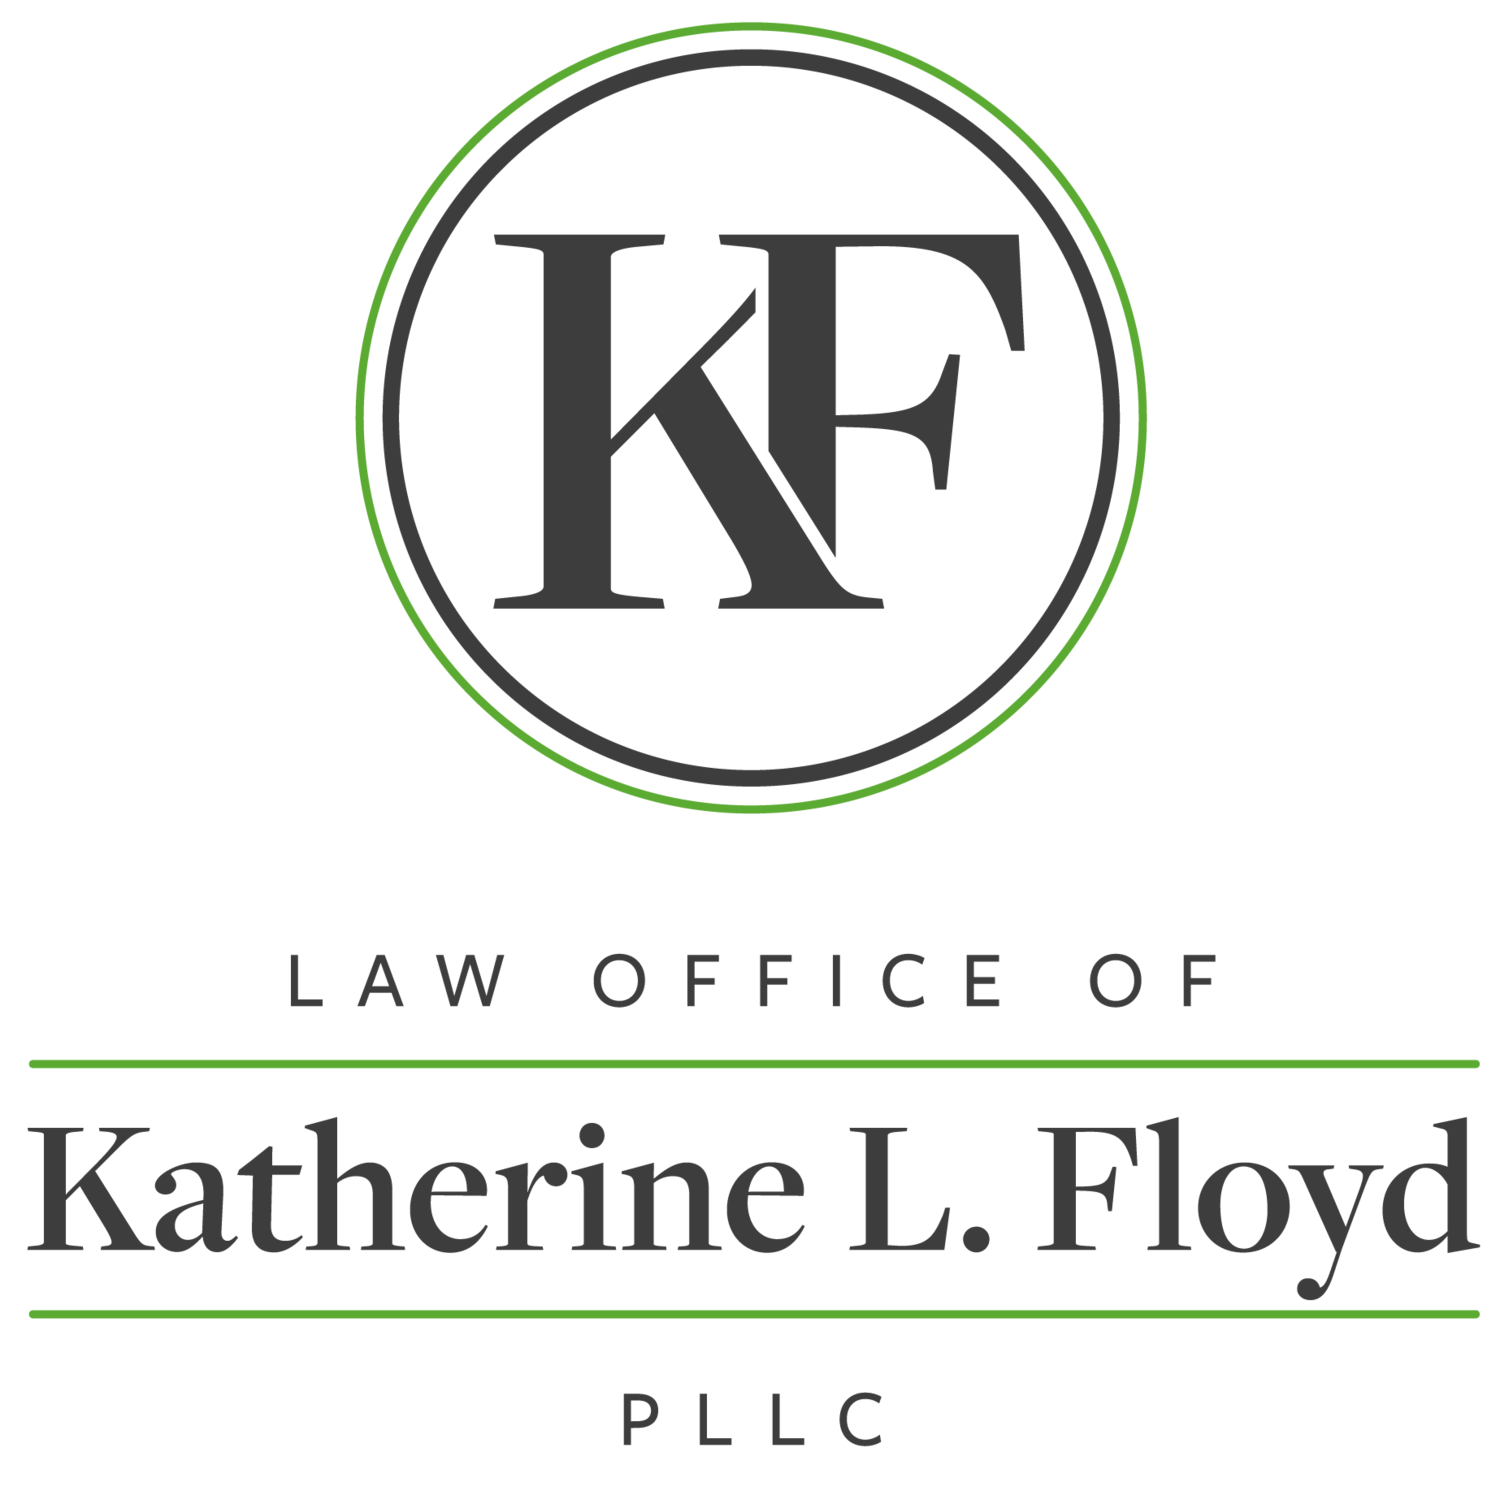 Law Office of Katherine L. Floyd, PLLC